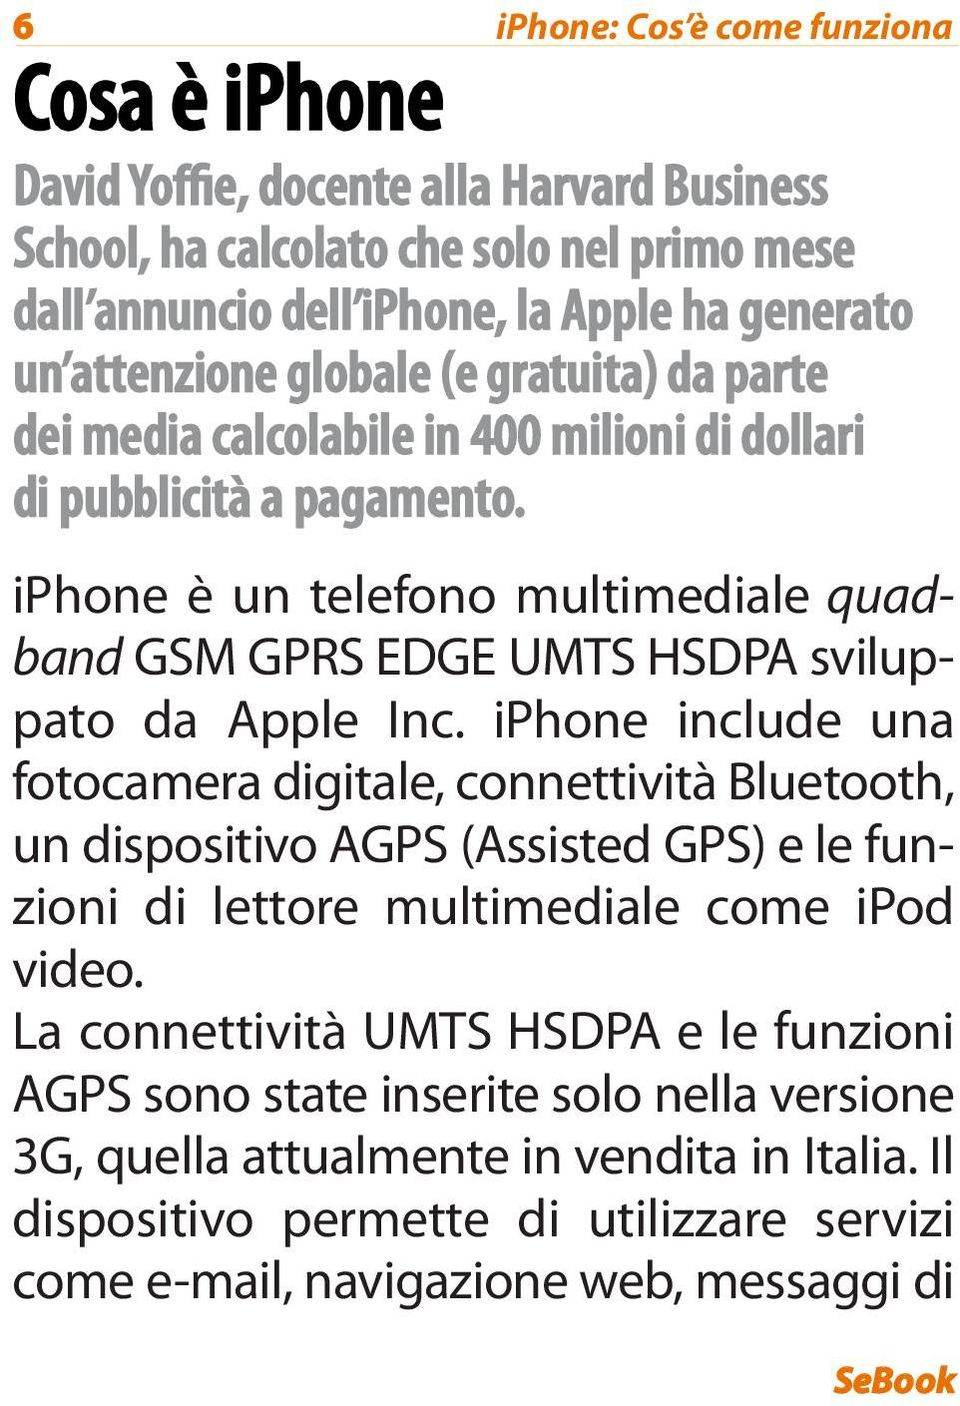 iphone è un telefono multimediale quadband GSM GPRS EDGE UMTS HSDPA sviluppato da Apple Inc.